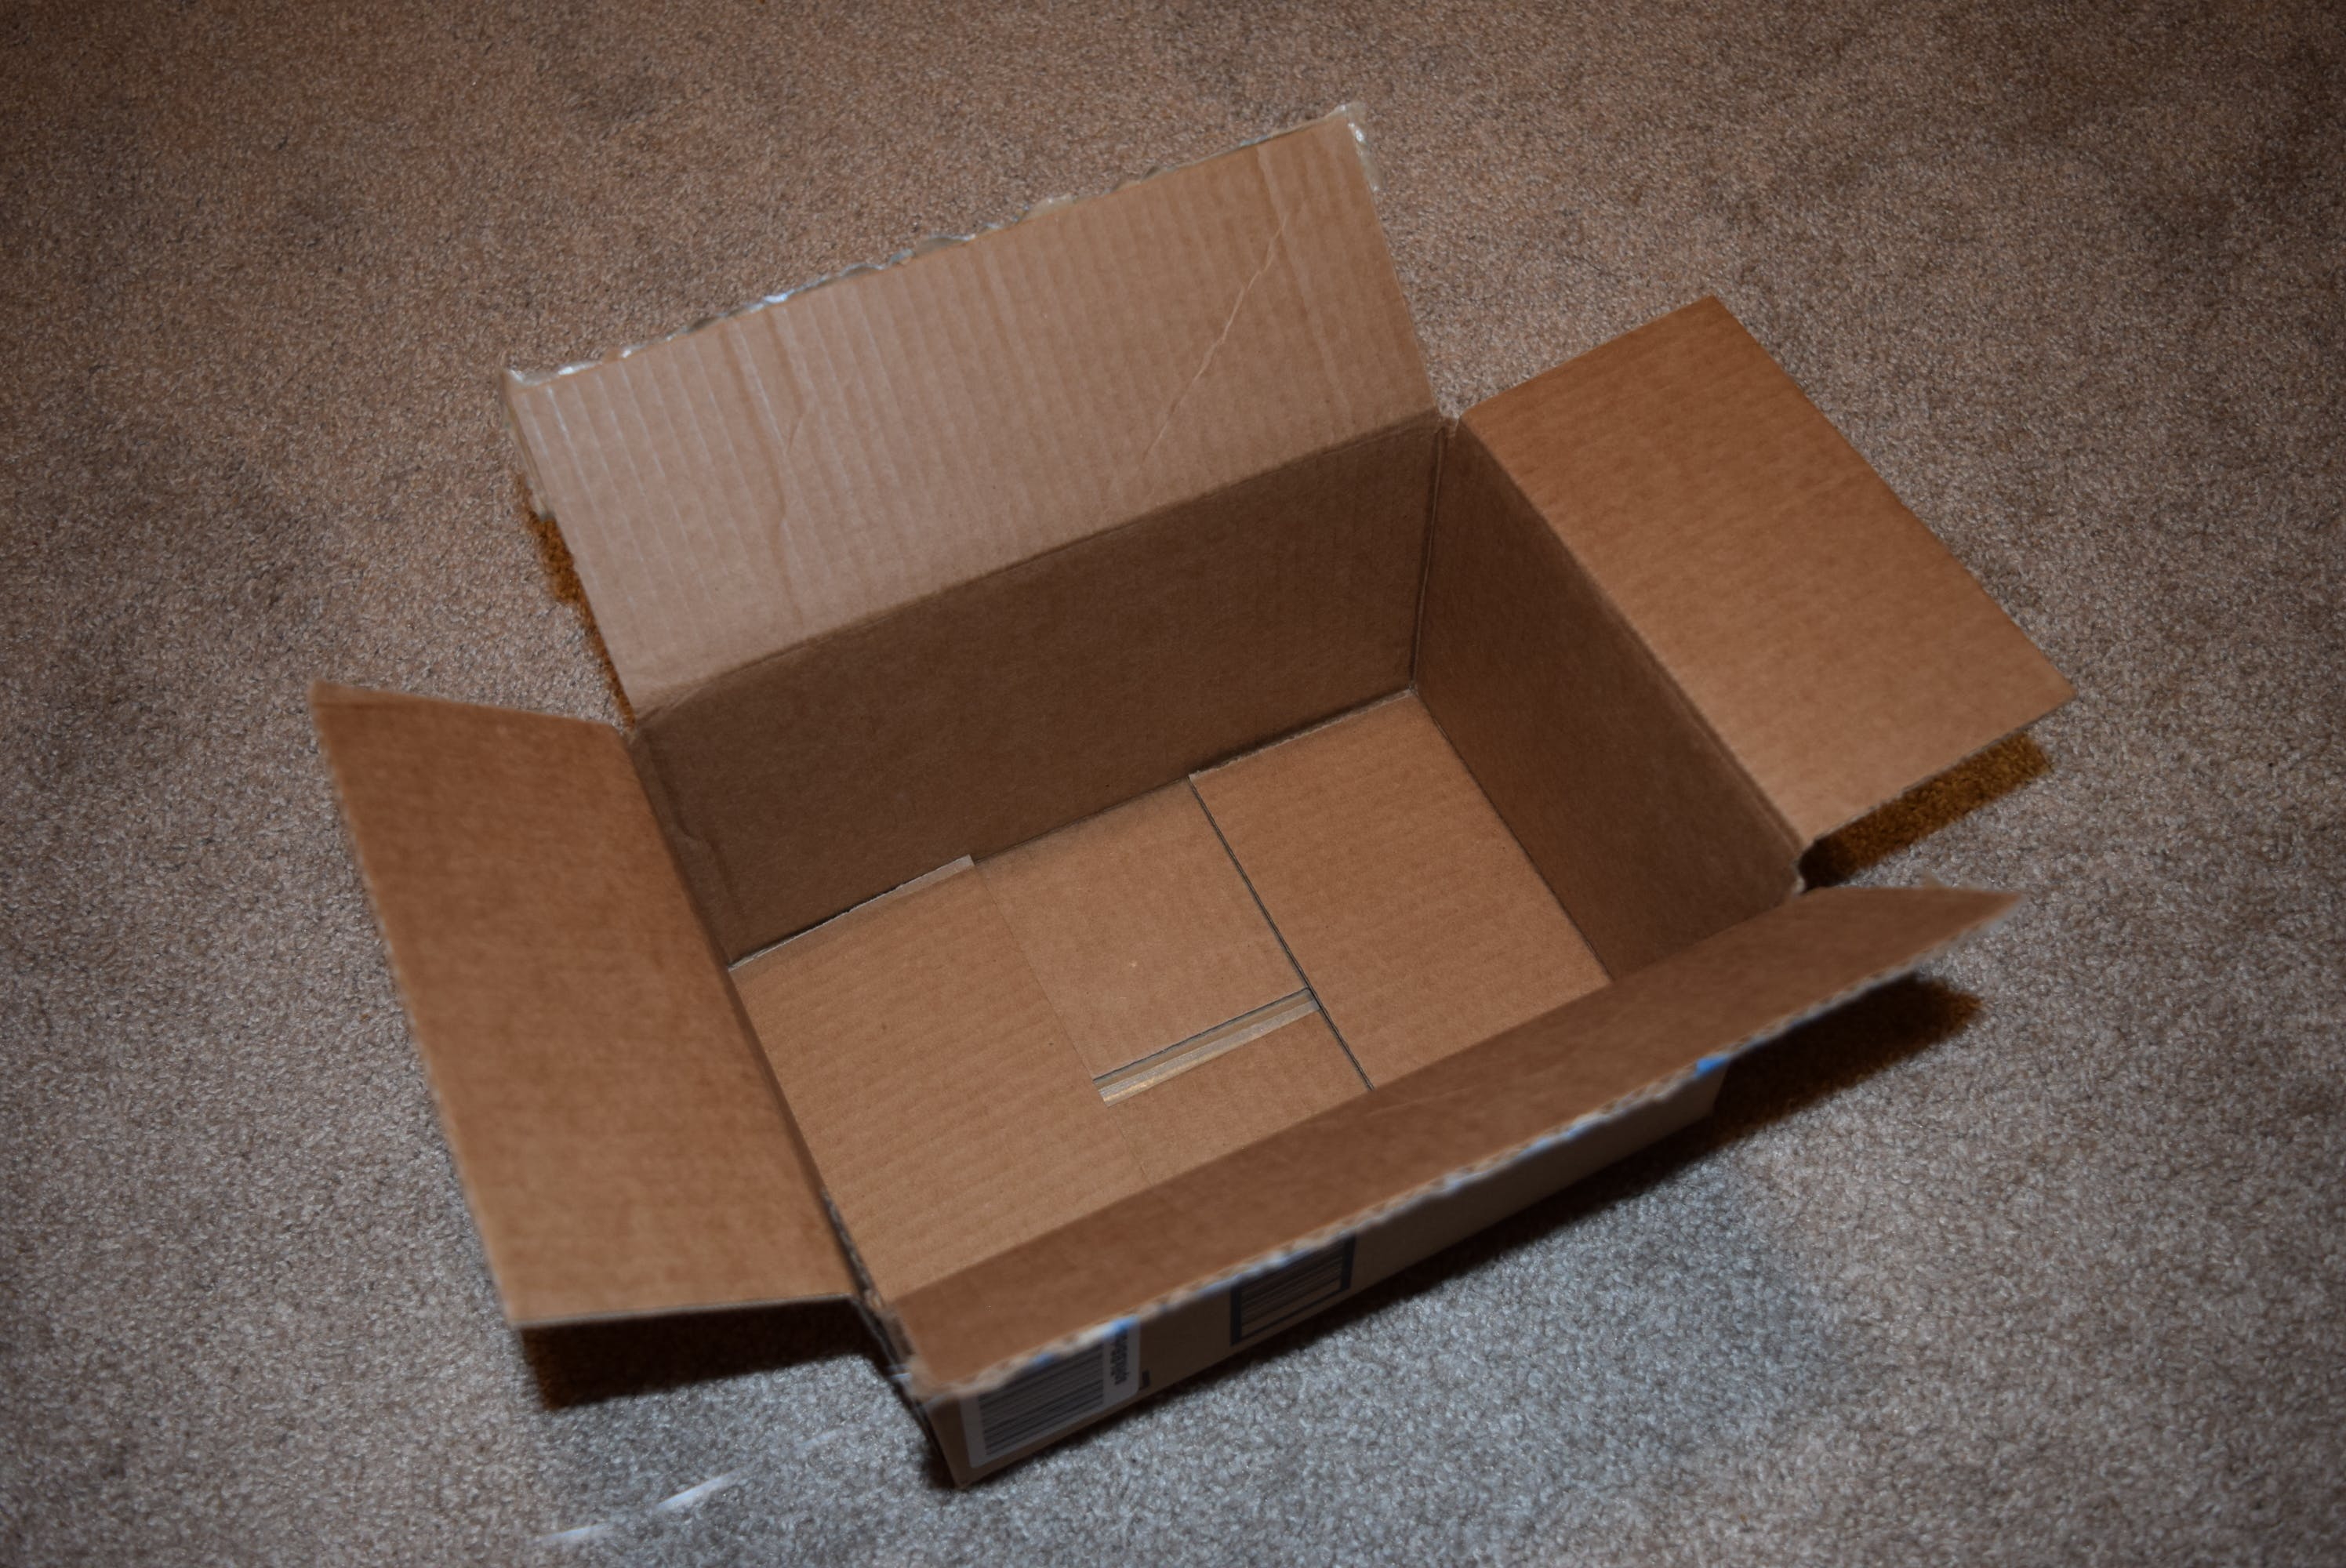 Start with a box